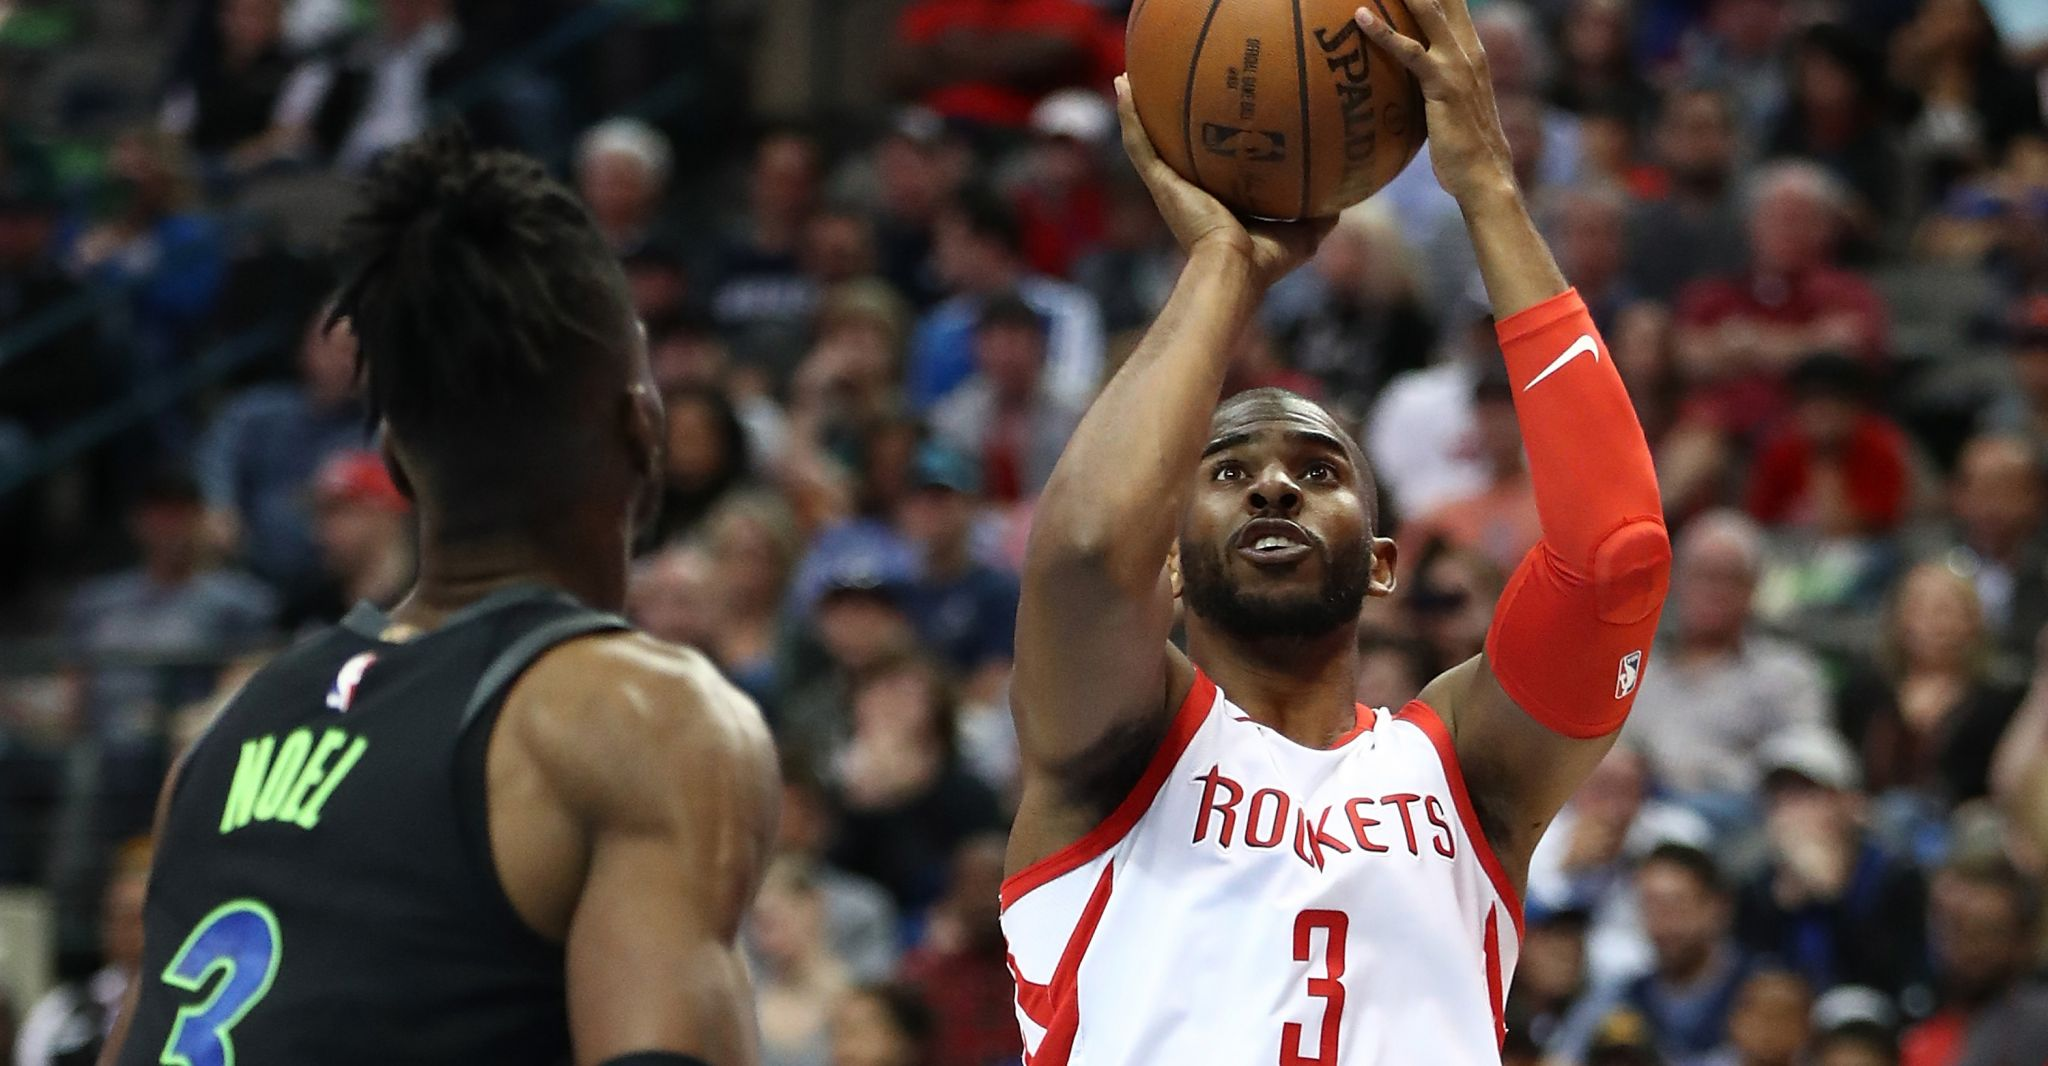 Rockets clinch playoff spot with rout of Mavericks